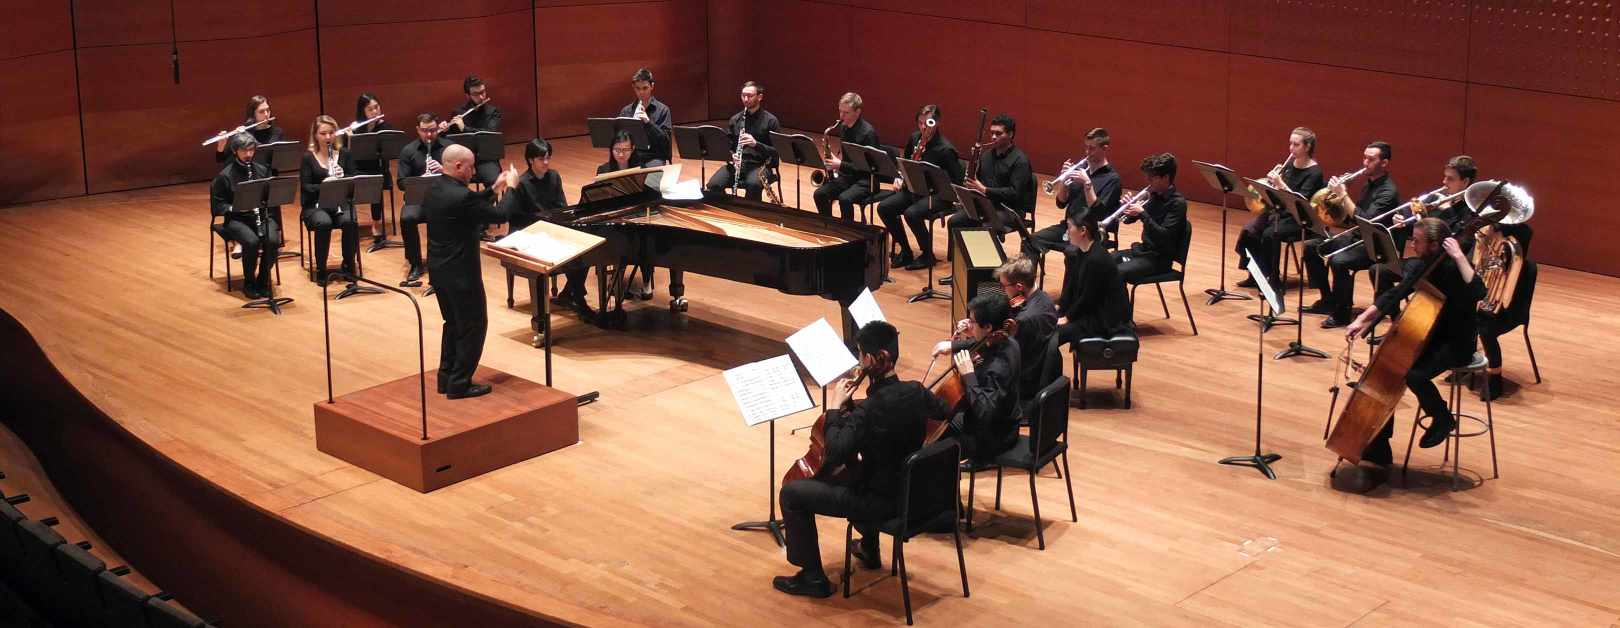 The Juilliard School's AXIOM Ensemble Performs Andriessen